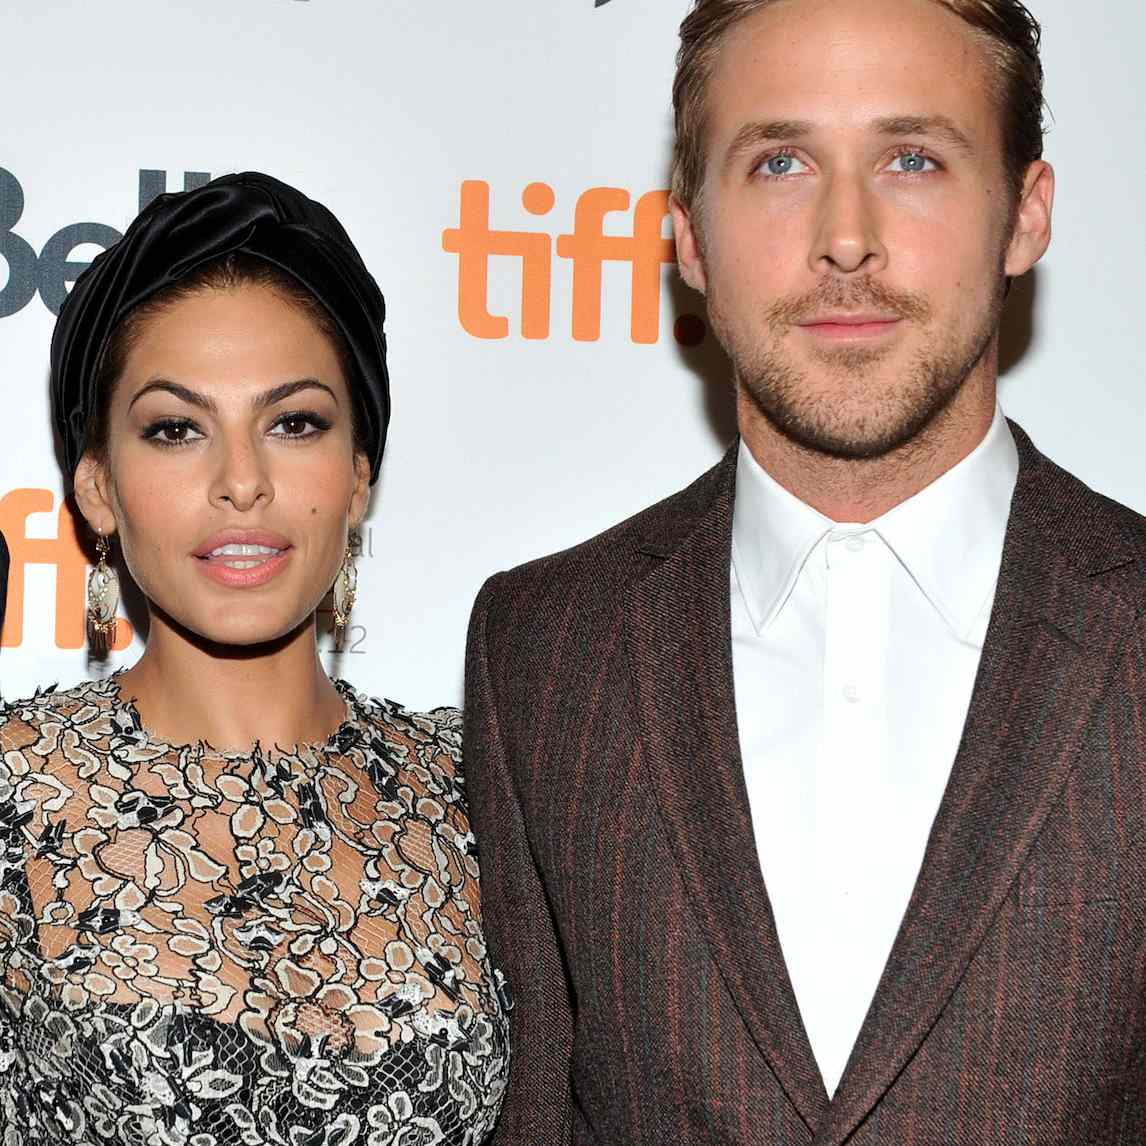 Eva Mendes stares straight into the camera in a floral lace sheer top over a black bustier next to Ryan Gosling in a brown suit